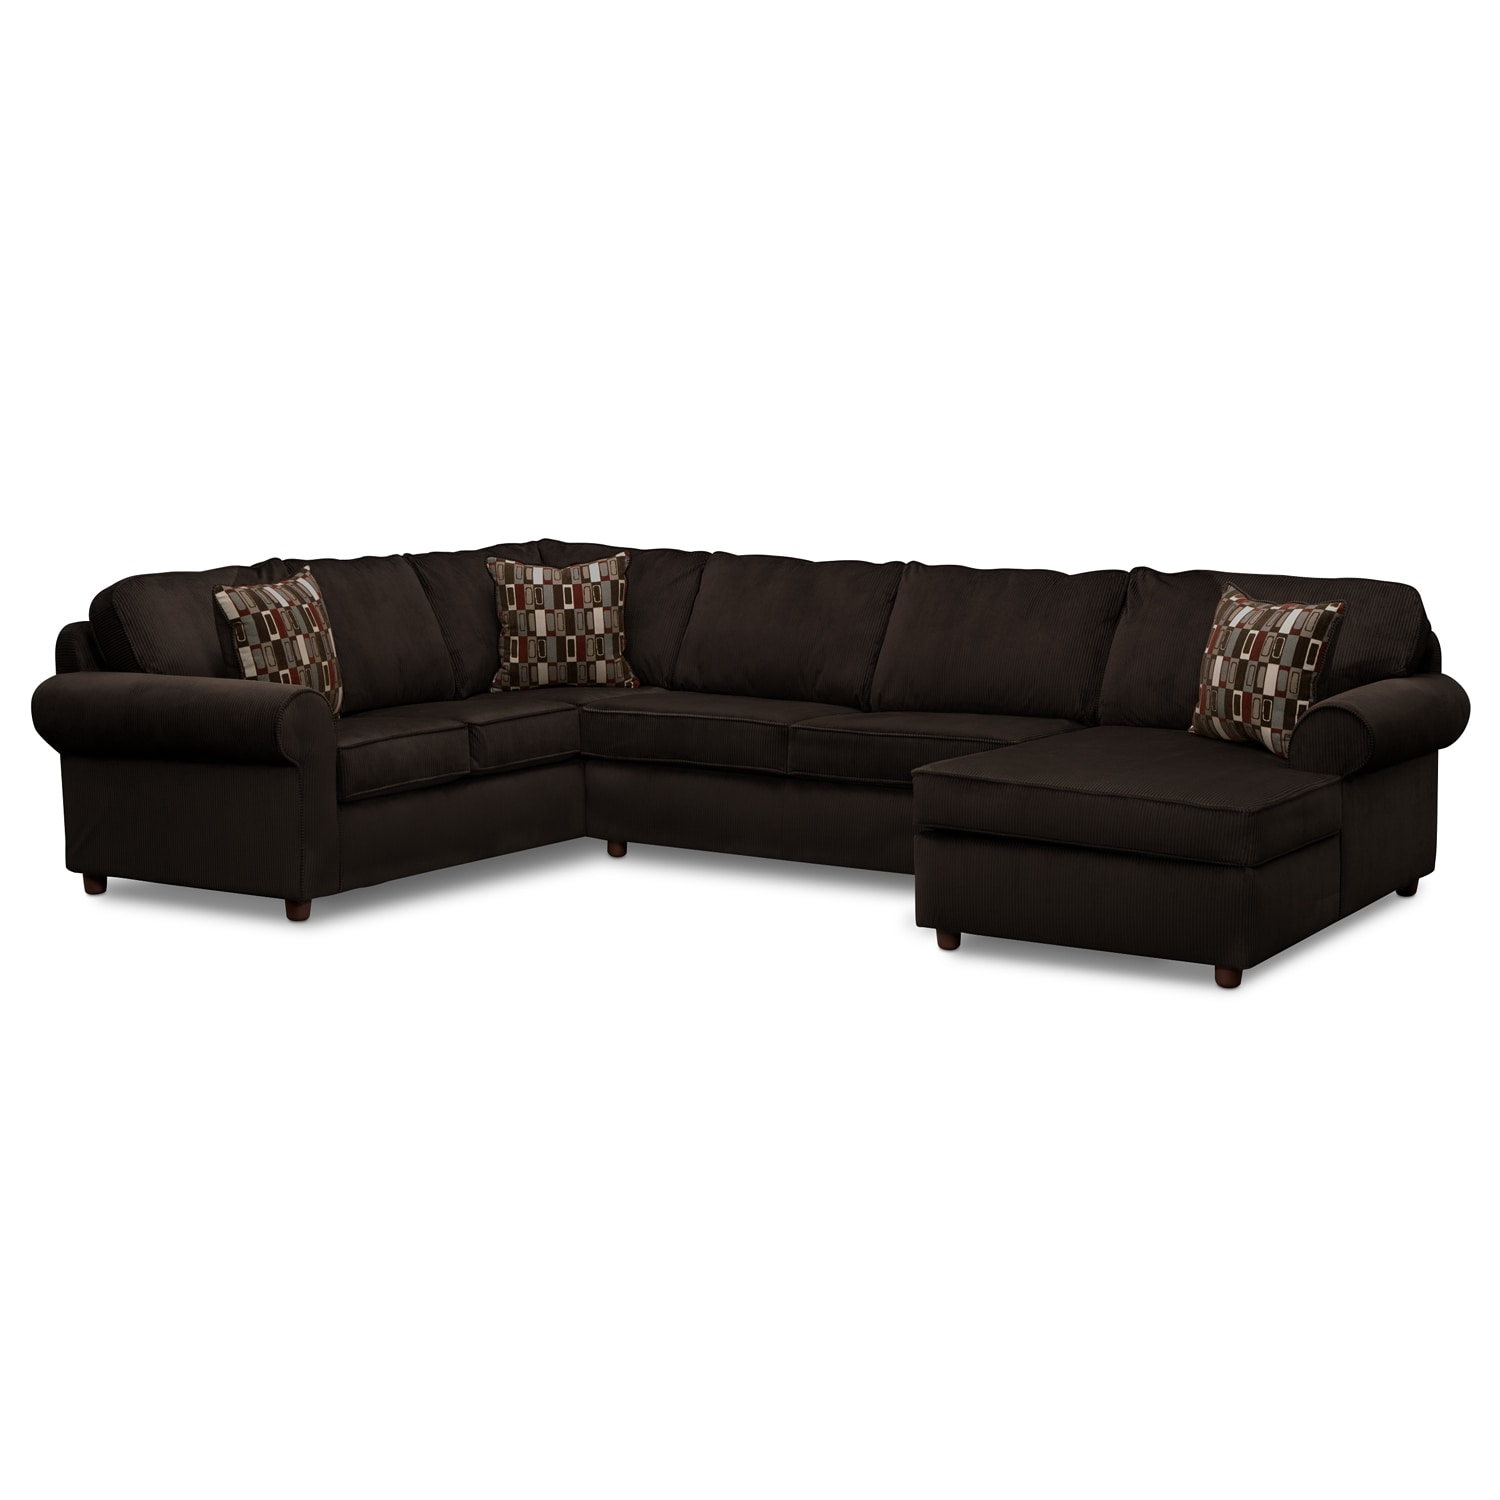 Monarch 3-Piece Sectional